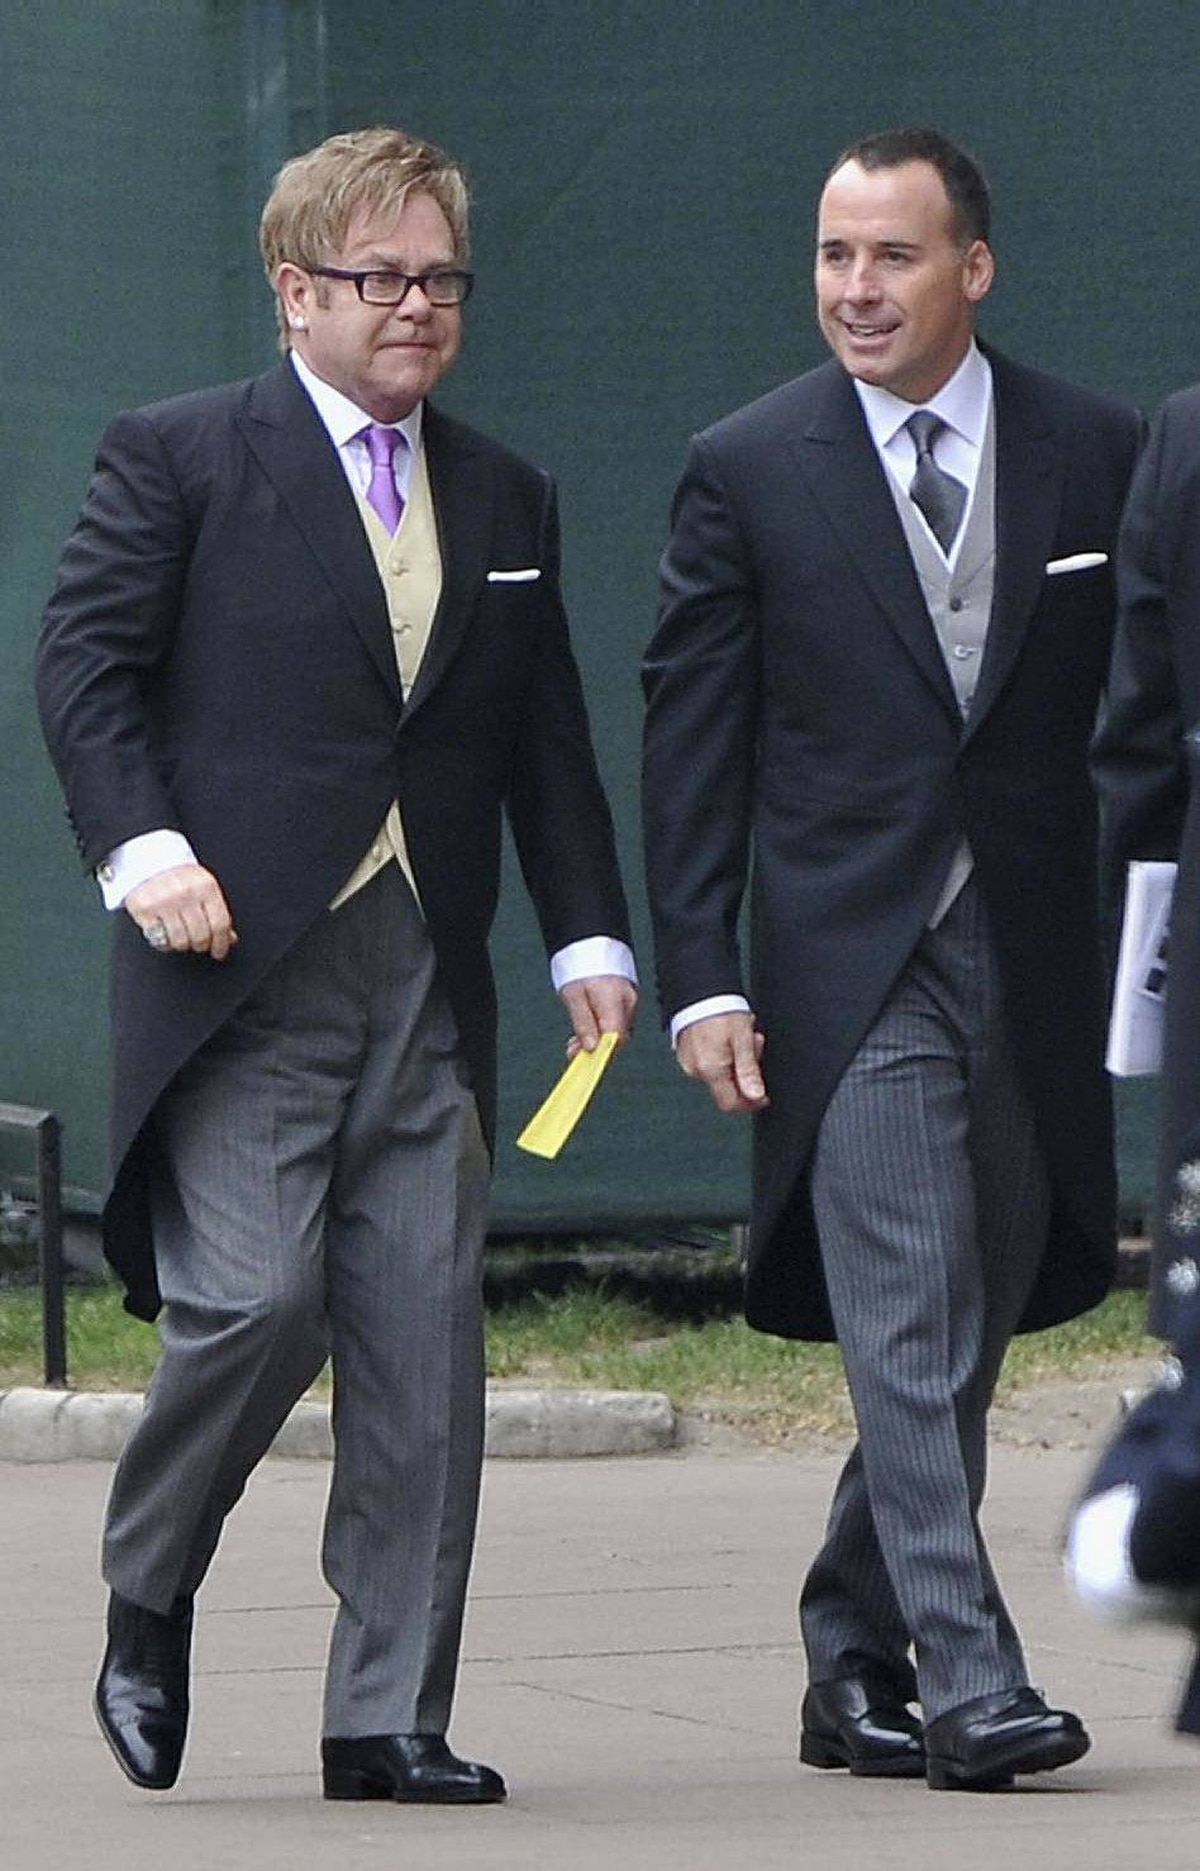 Elton John, left, and David Furnish arrive to attend the Royal Wedding of Prince William to Catherine Middleton at Westminster Abbey on April 29, 2011 in London, England.